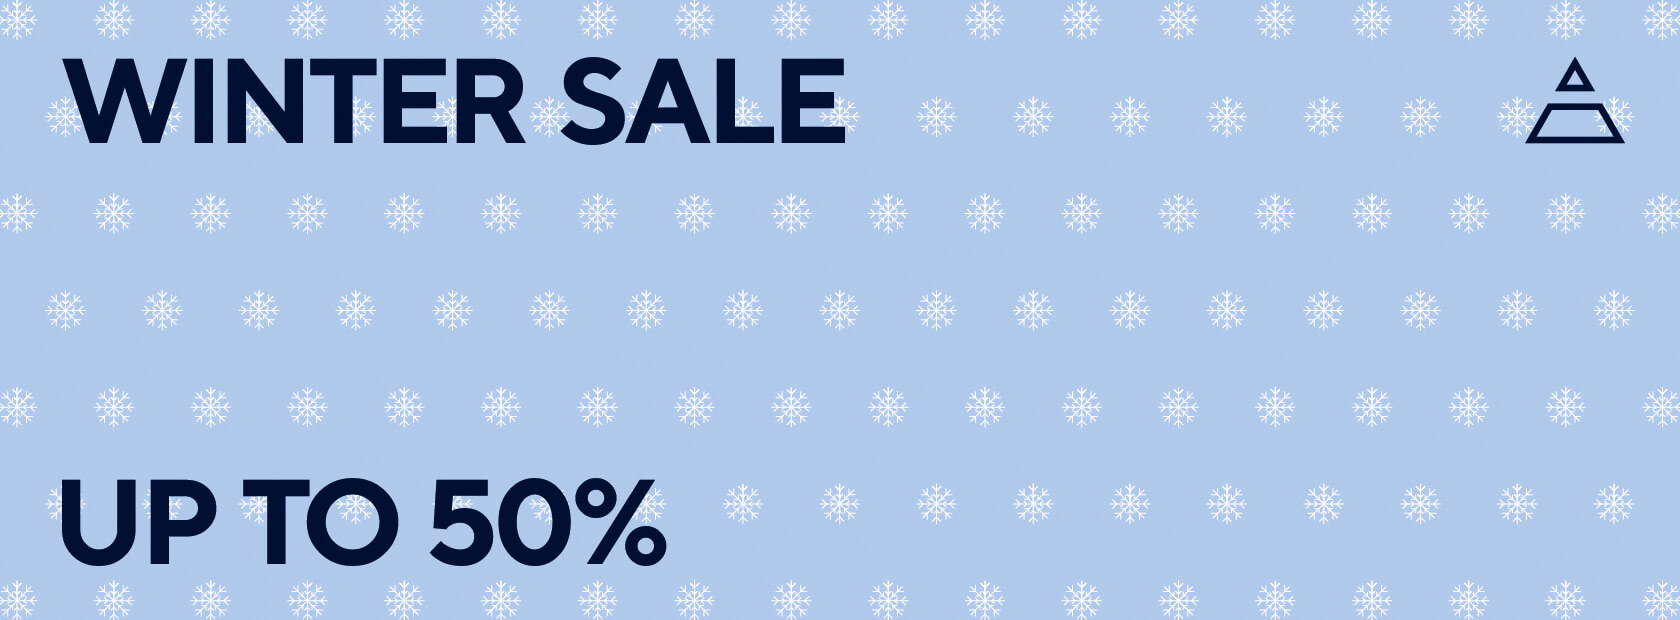 Winter Sale - Up to 50%